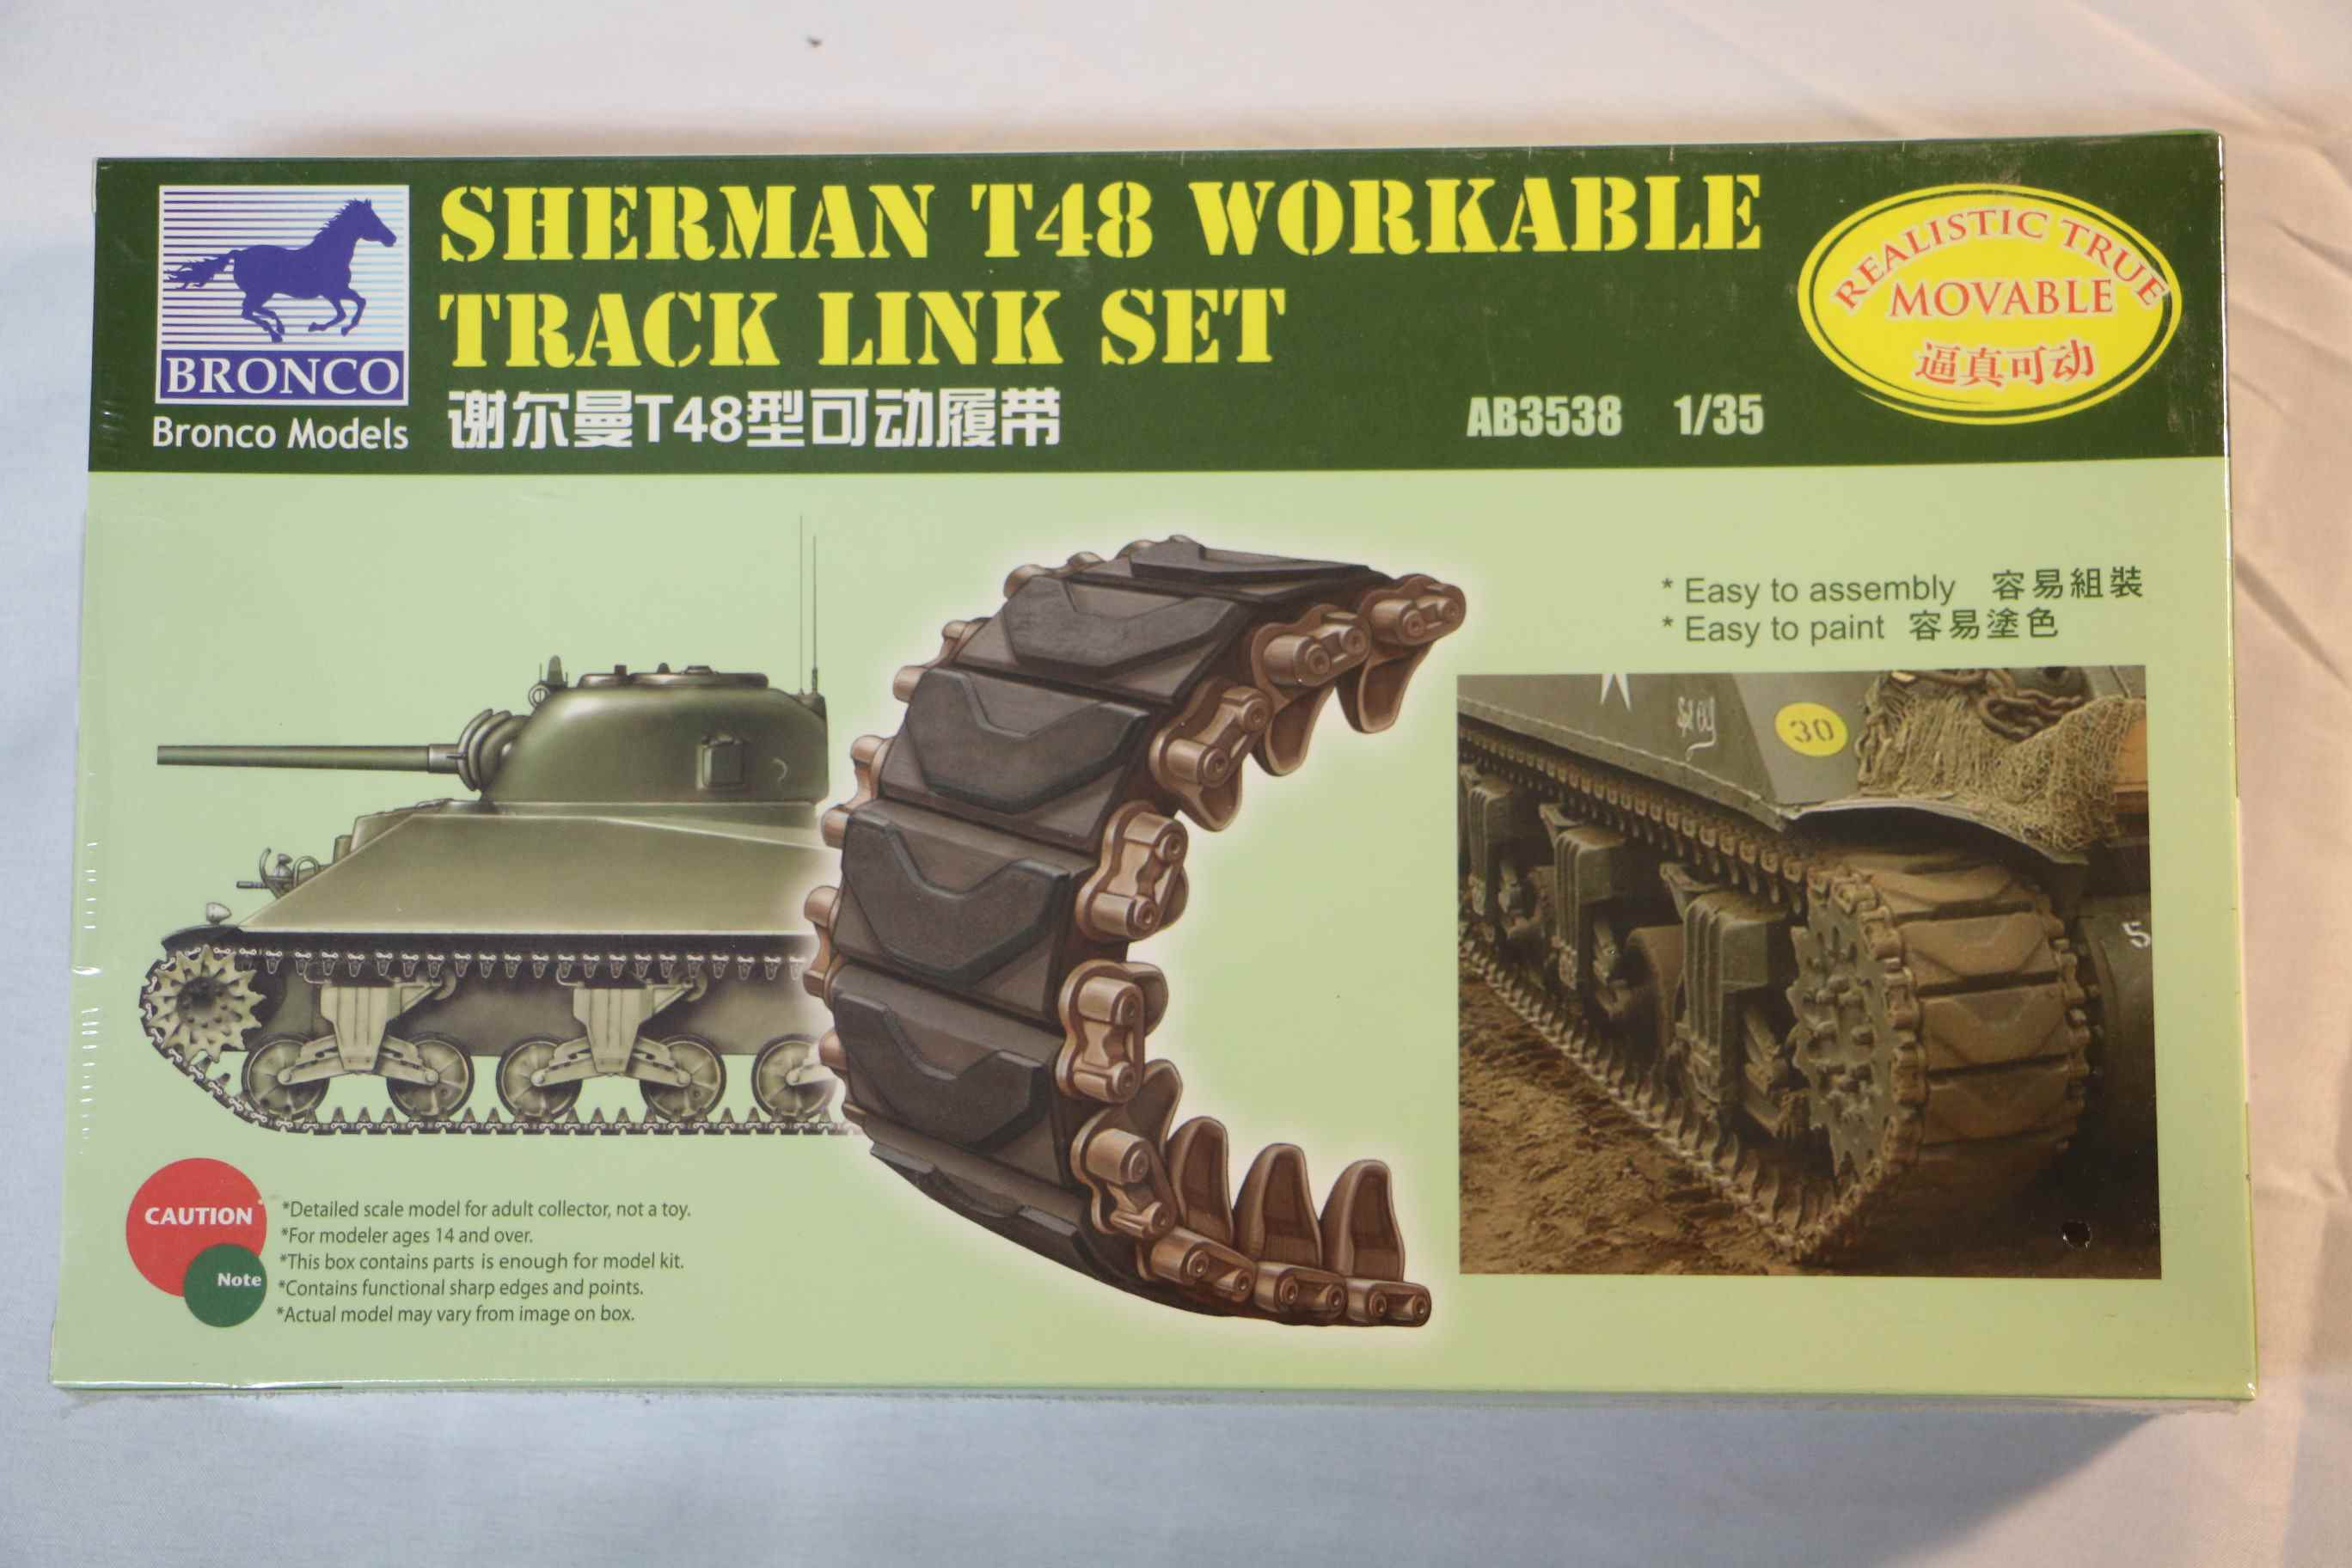 BROAB3538 - Bronco 1/35 Sherman T48 Workable Track